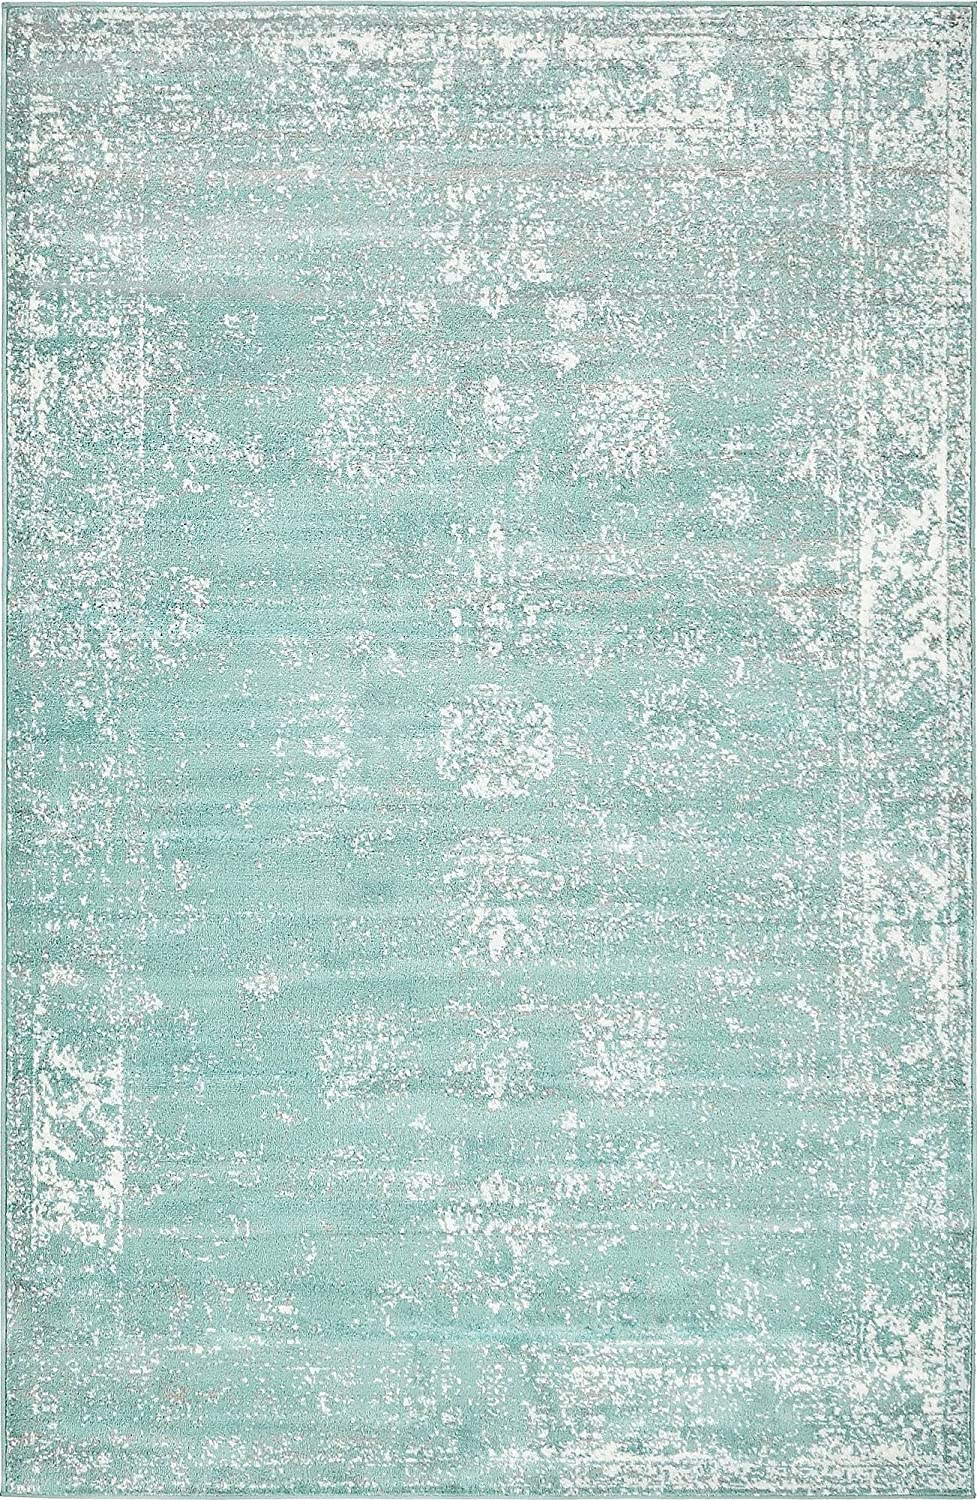 Unique Loom 3137809 Sofia Collection Traditional Vintage Beige Area Rug, 5' x 8' Rectangle, Turquoise